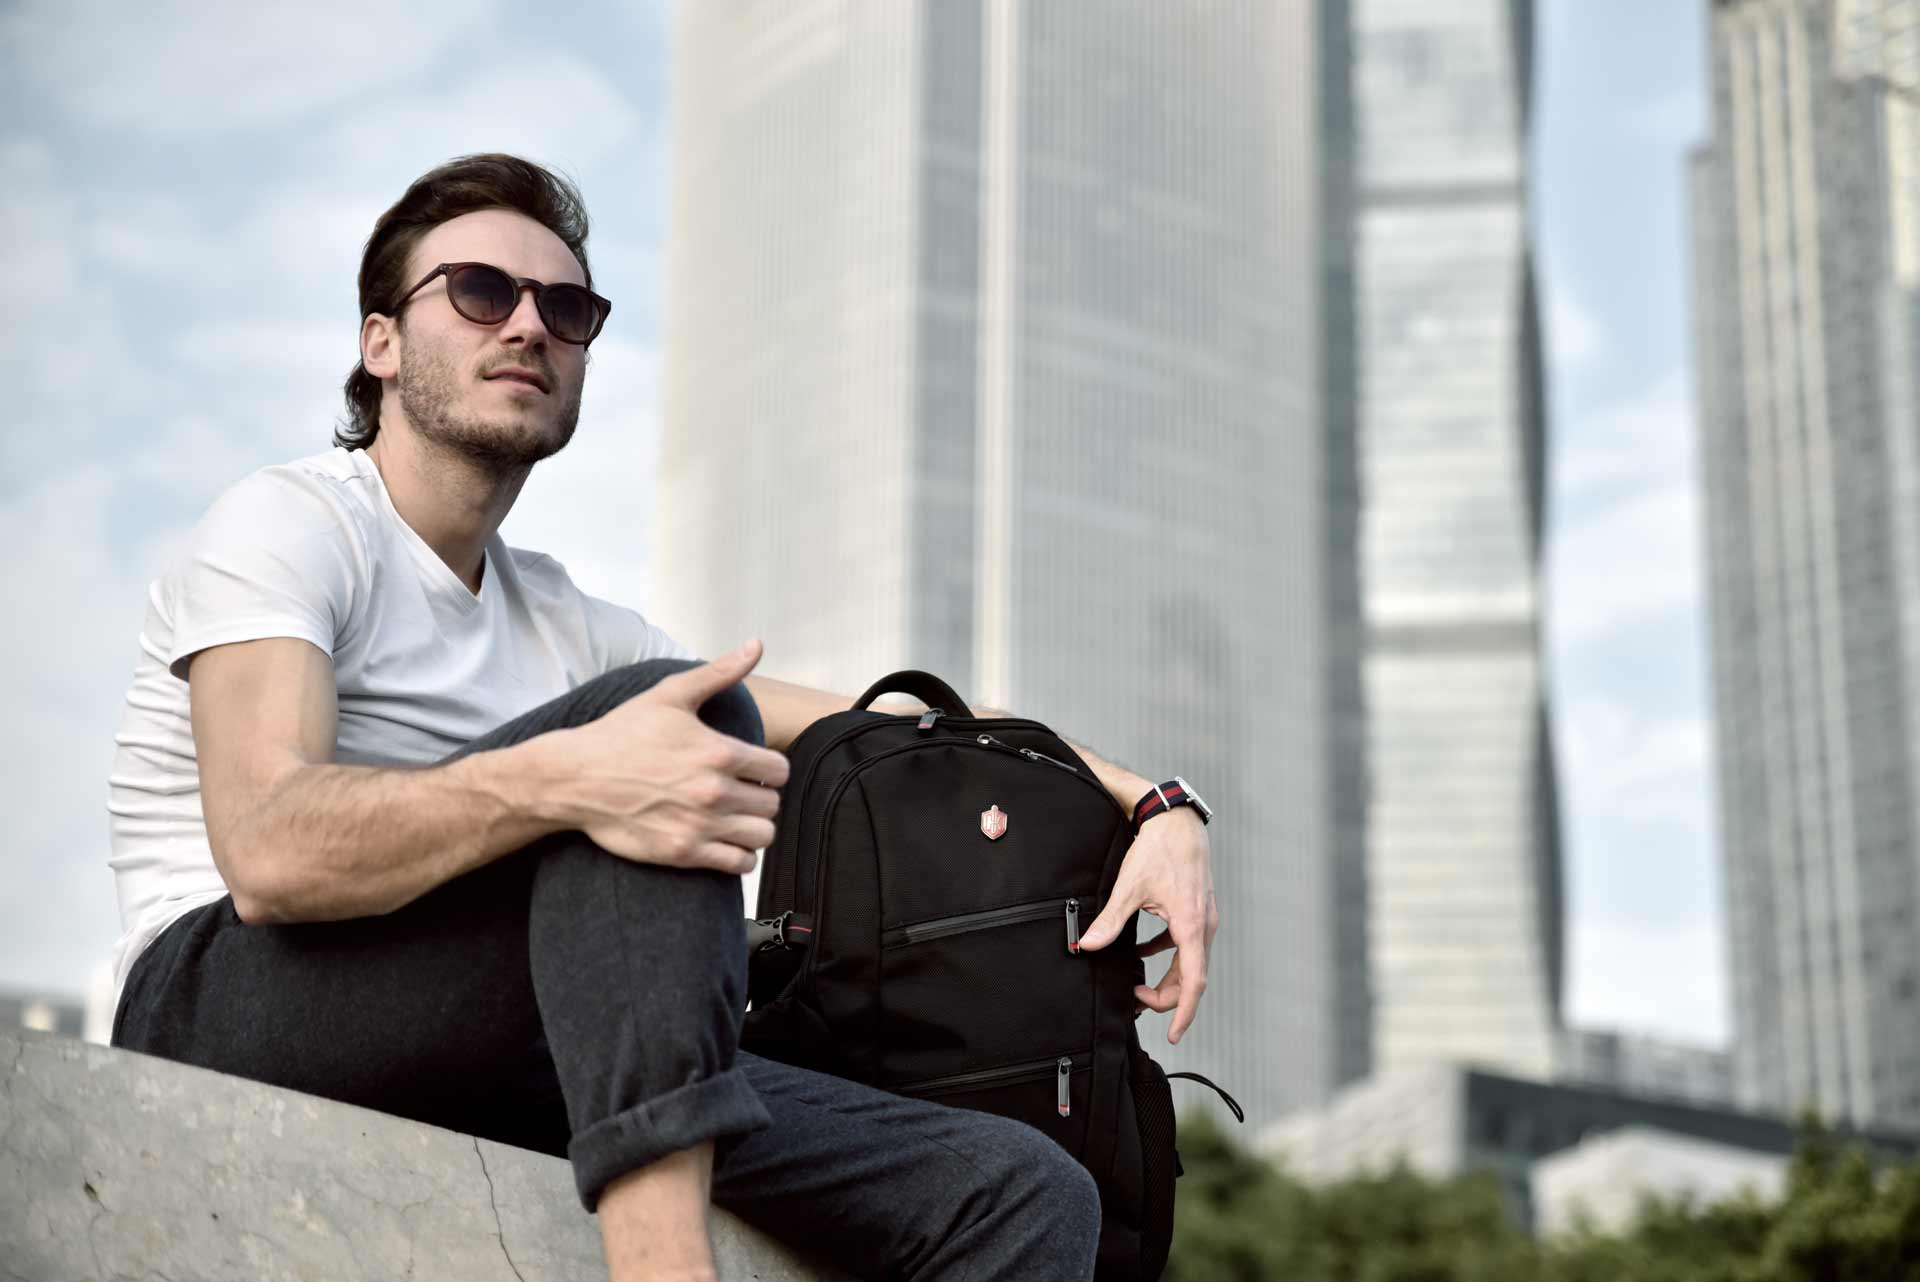 Krimcode Lifestyle Bag - Smart Casual